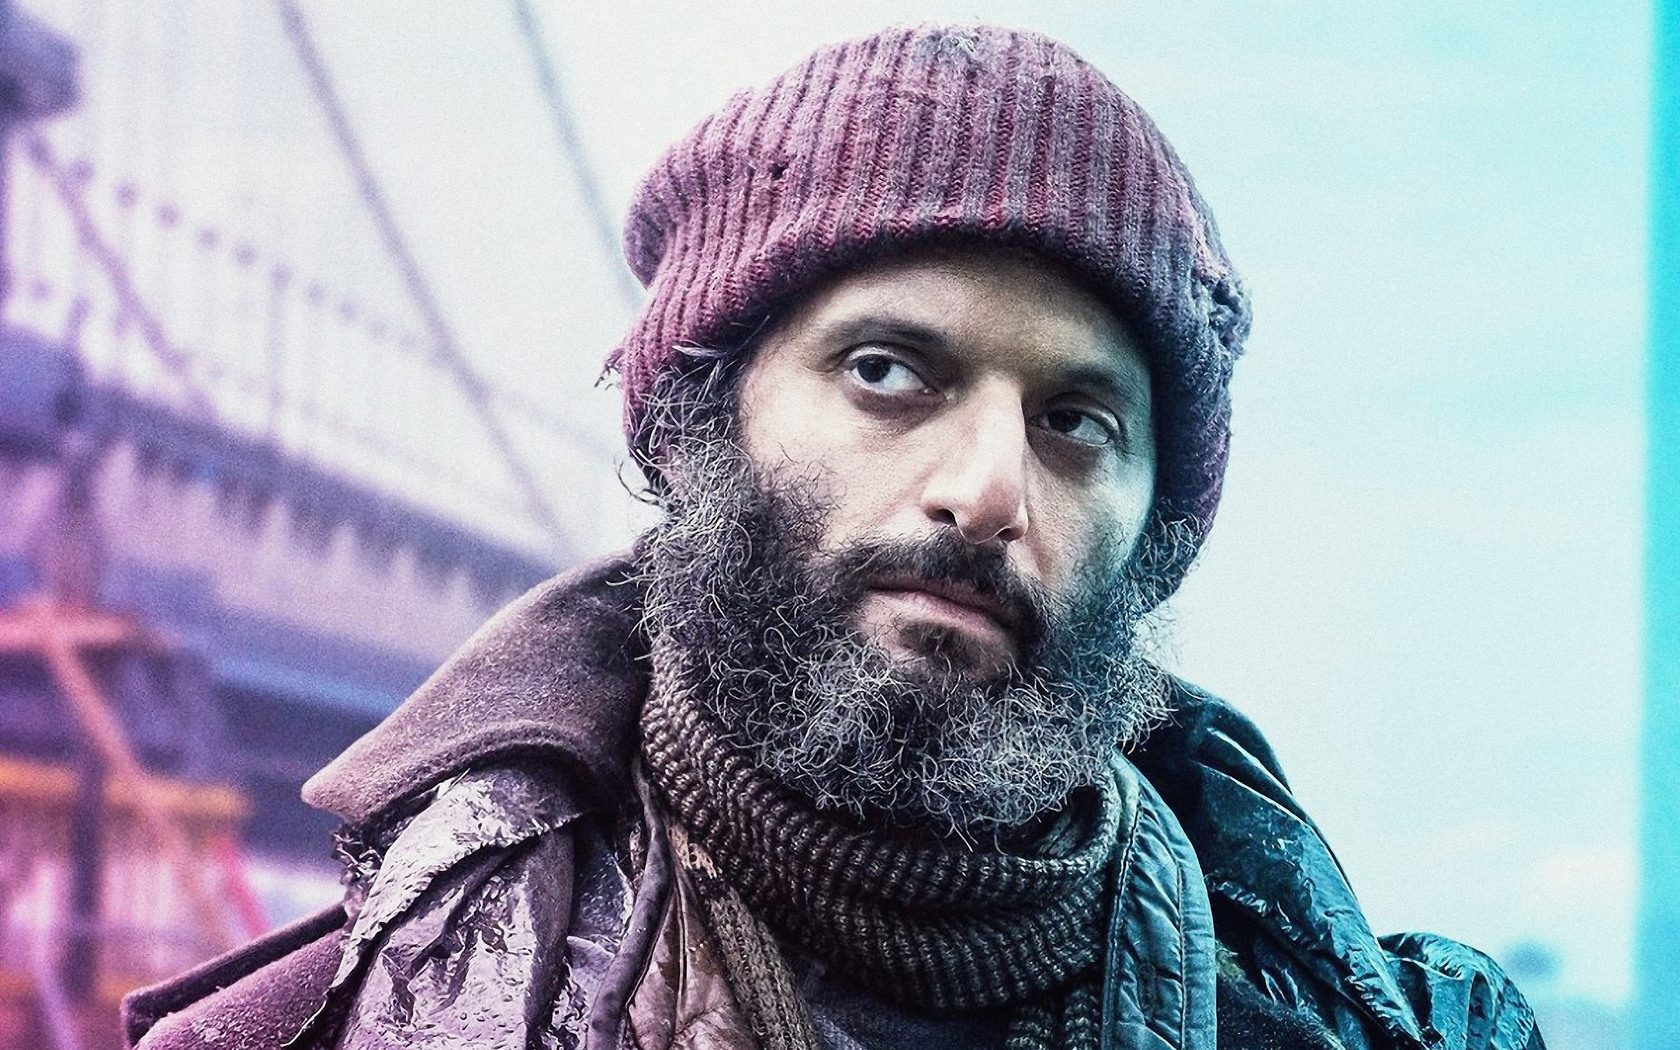 jason-mantzoukas-as-tick-tock-man-in-john-wick-chapter-3-parabellum-2019-8k-i4.jpg